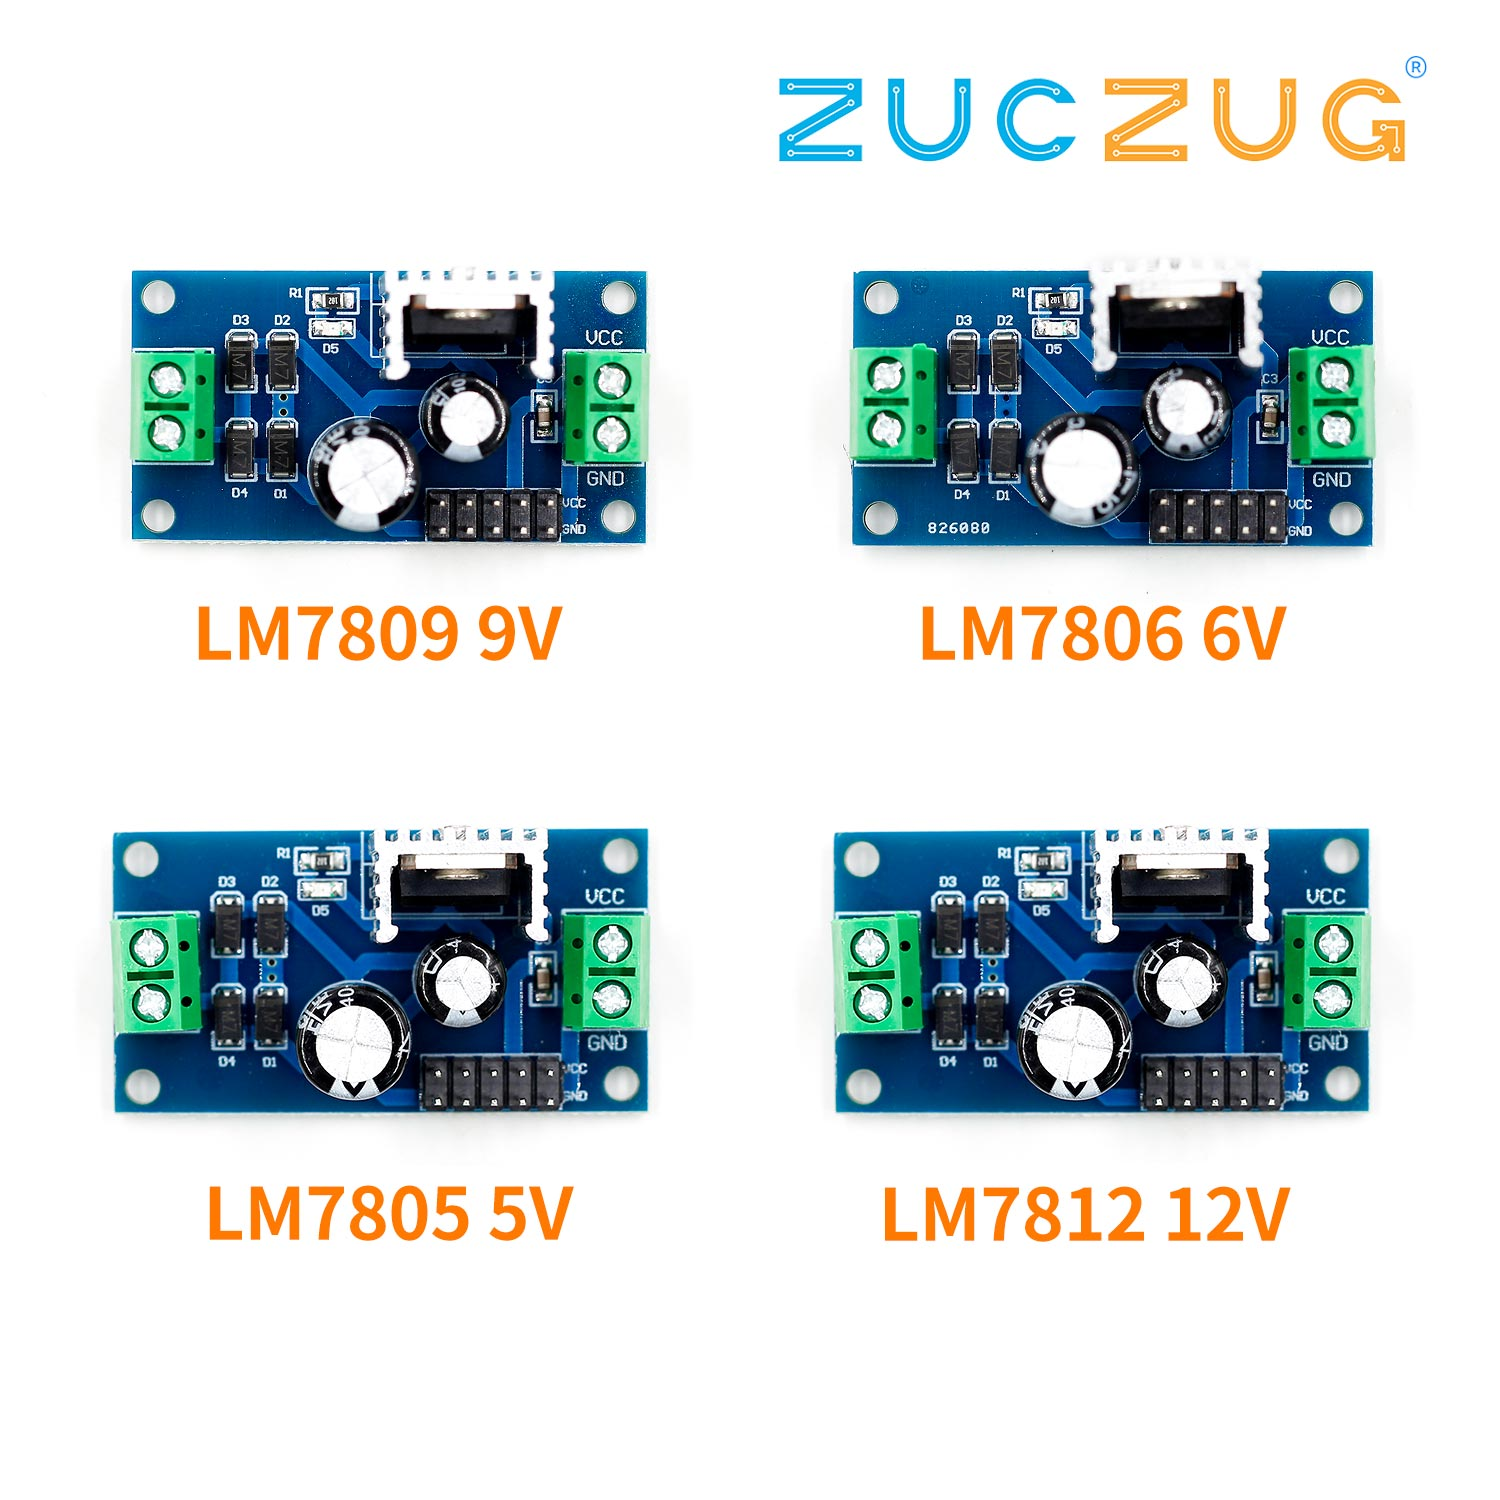 LM7805 LM7806 LM7809 LM7812 DC/AC Three Terminal Voltage Regulator Power Supply Module 5V 6V 9V 12V Output Max 1.2A